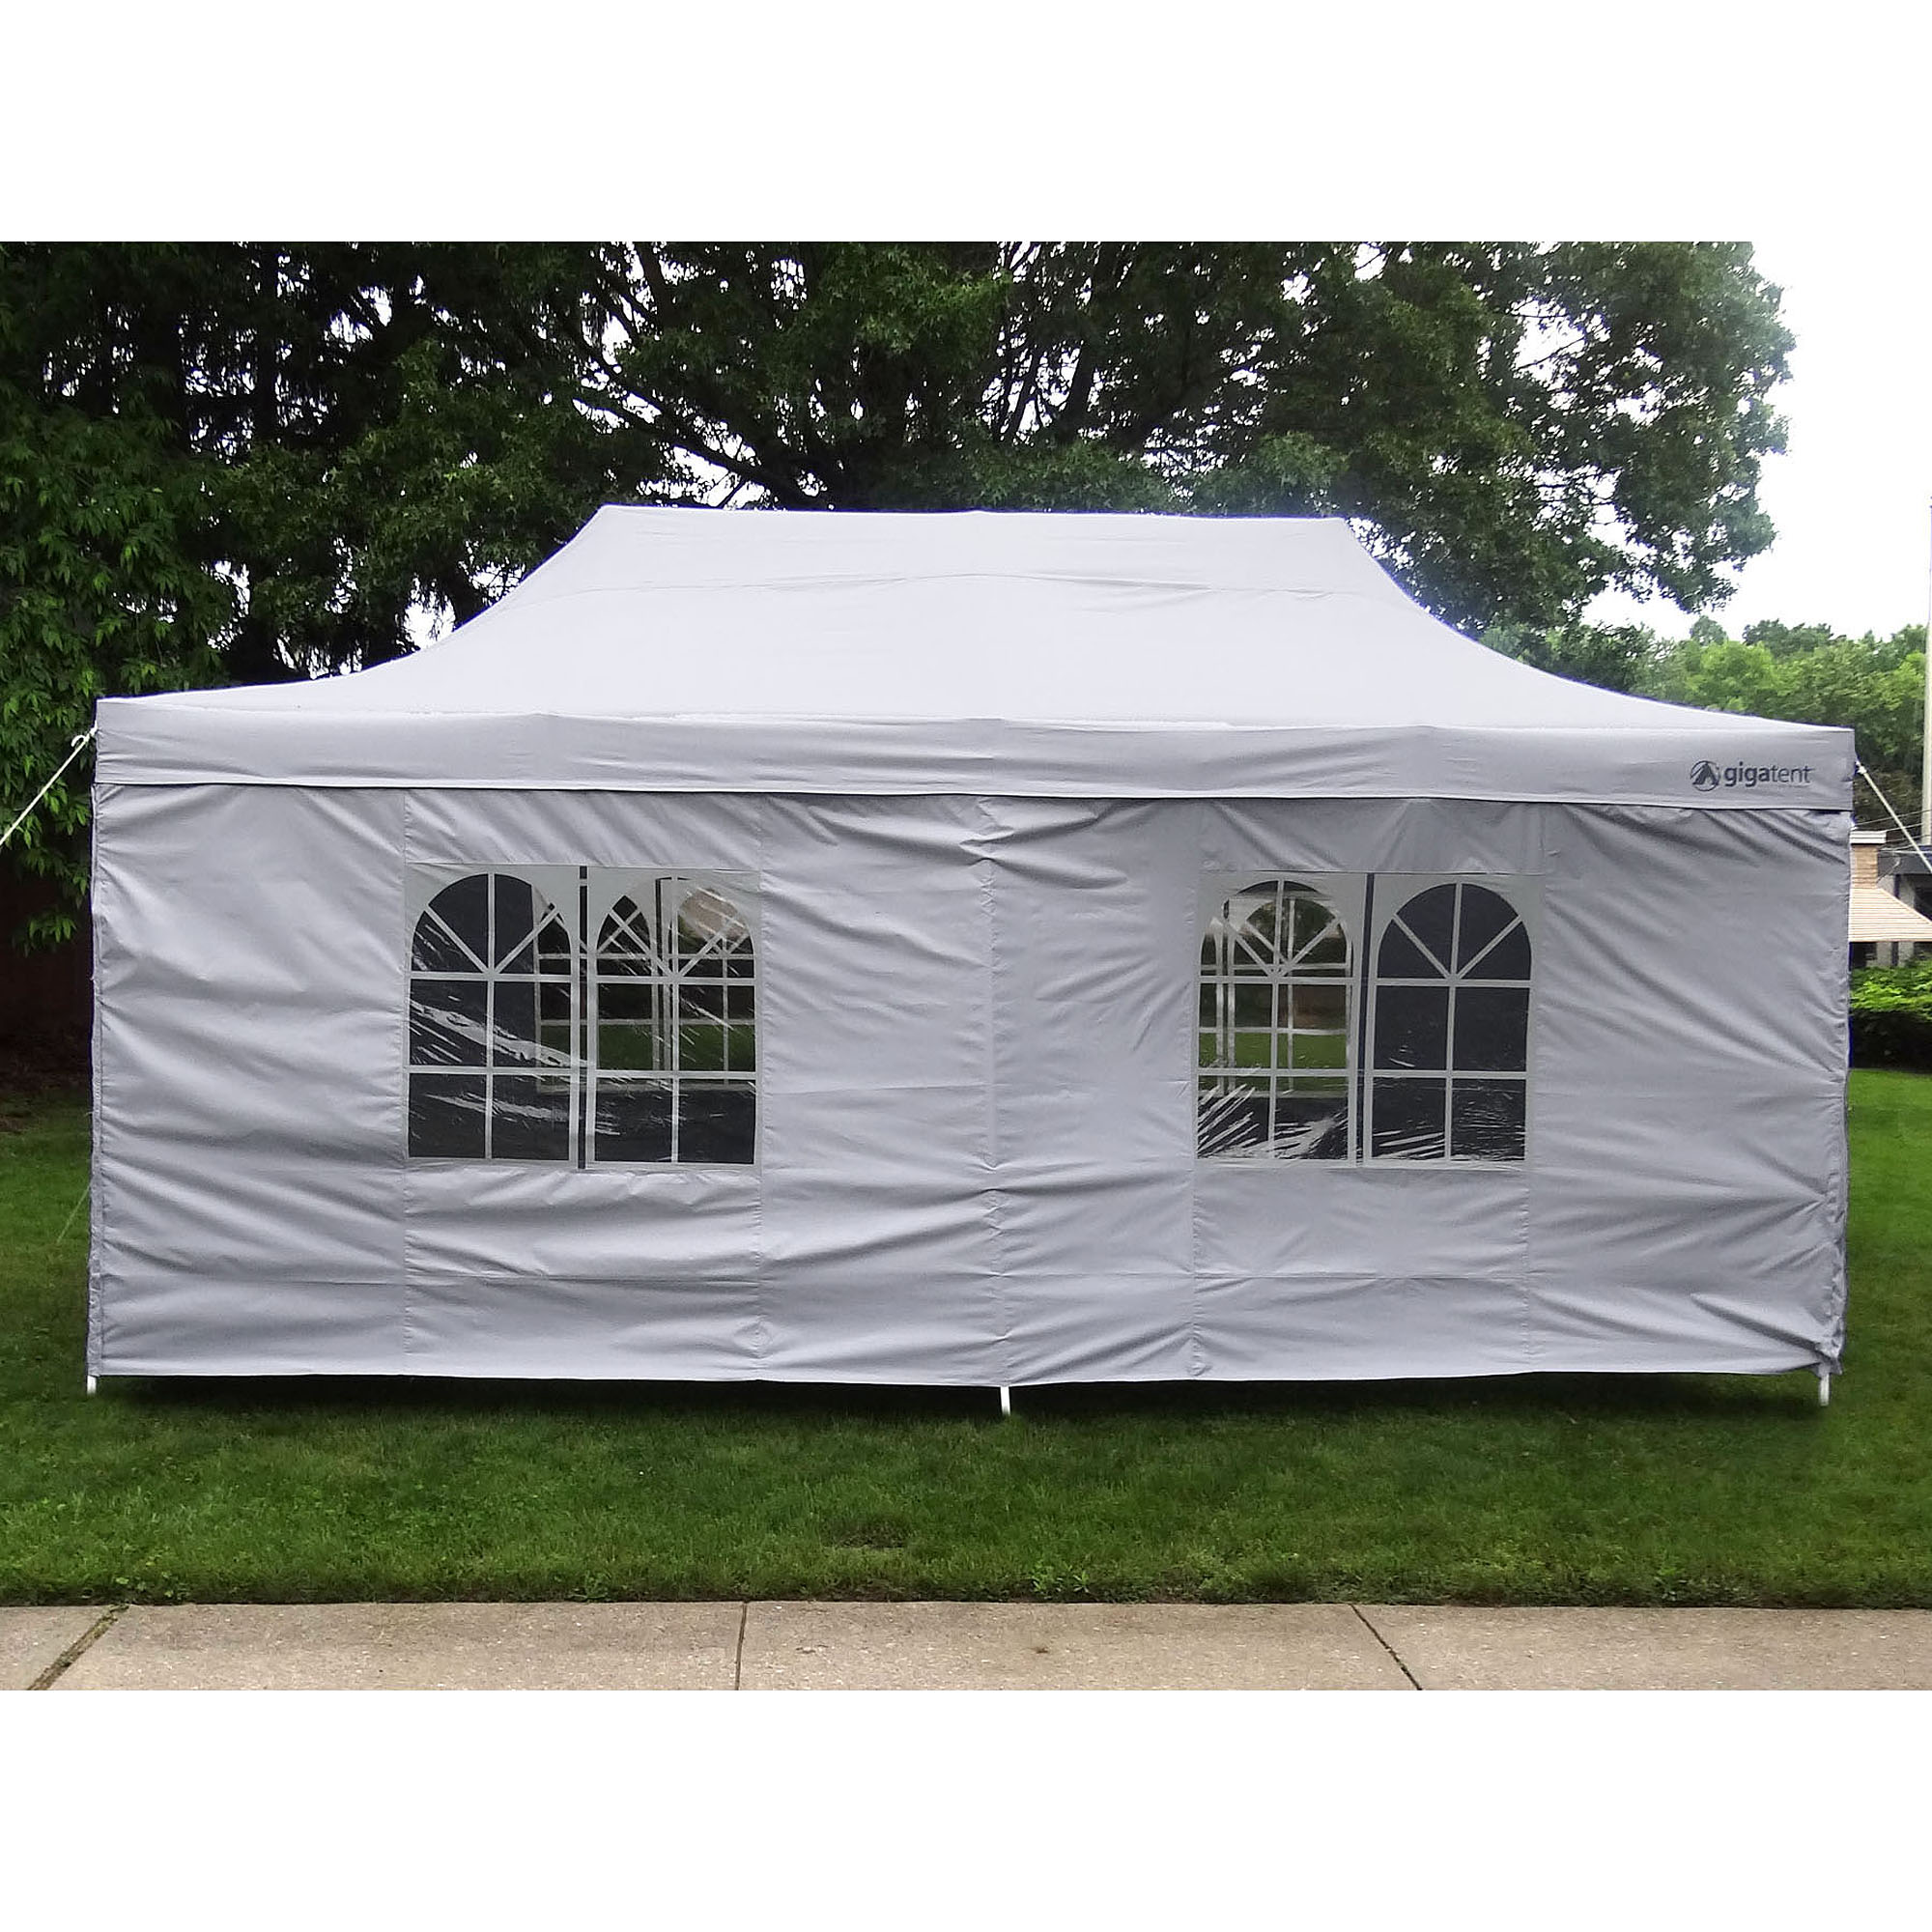 GigaTent The Party Tent Deluxe 10' x 20' Canopy, White